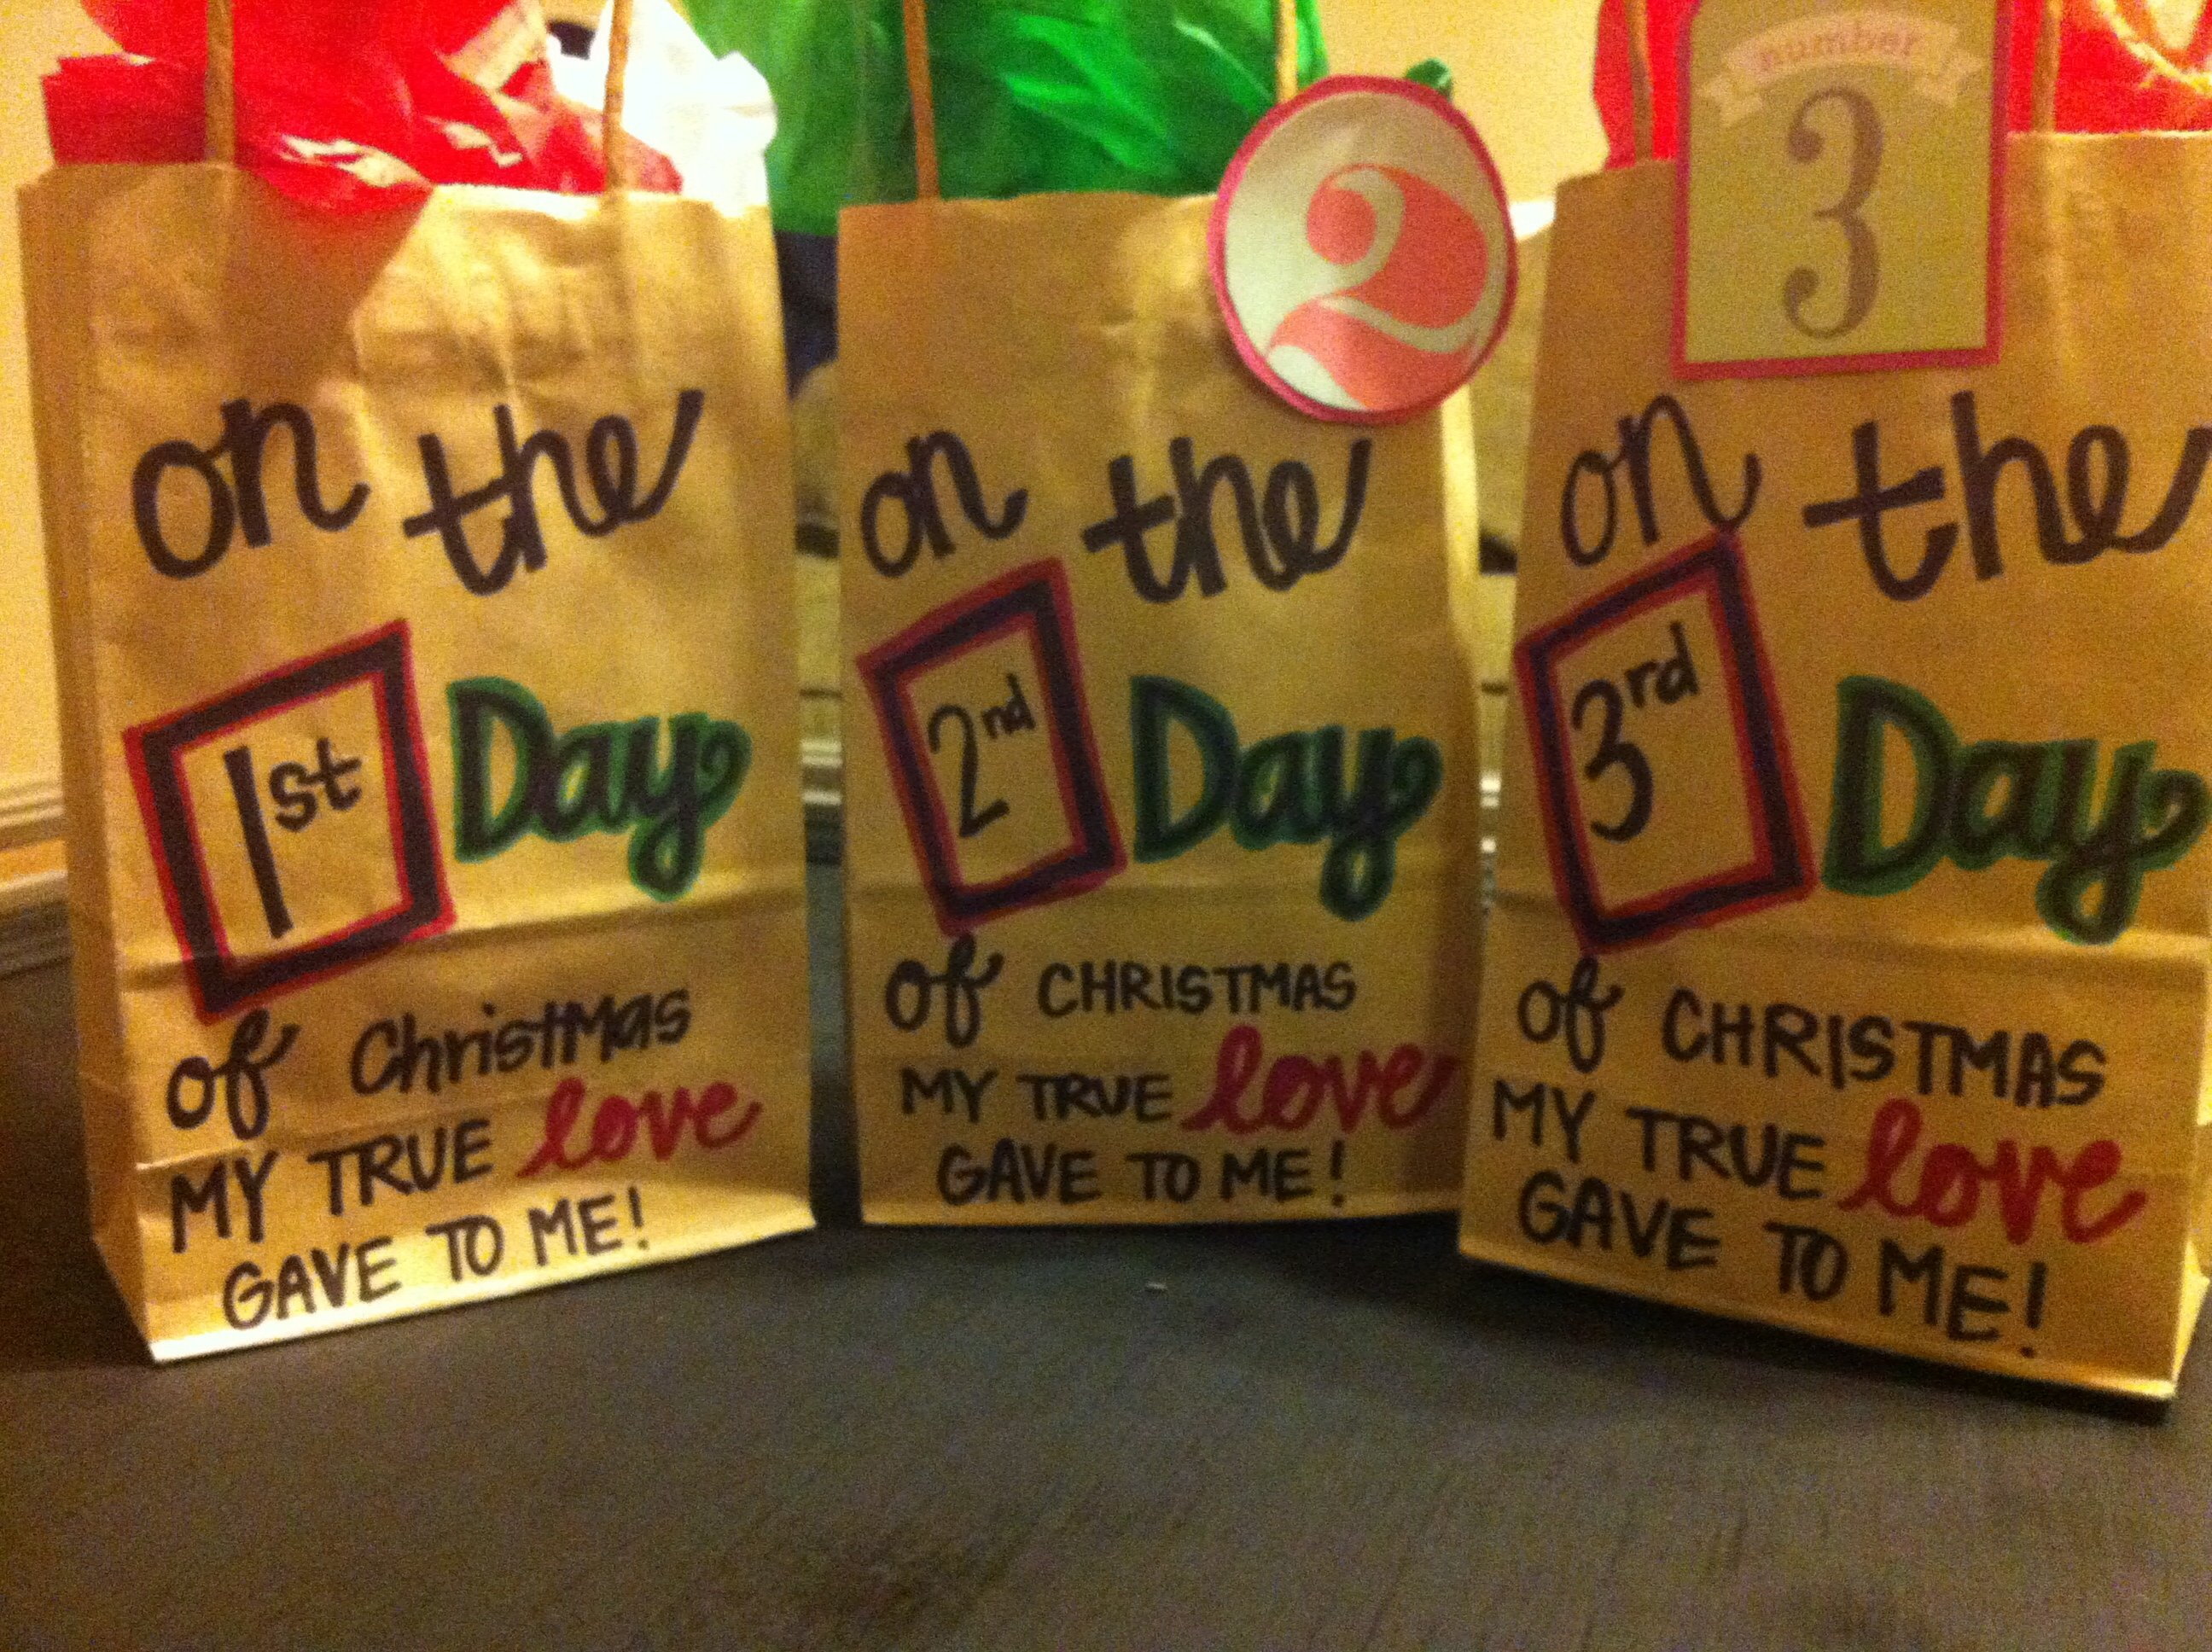 10 Fabulous Christmas Ideas For My Wife 12 days of christmas for my husband to be our creations 5 2021